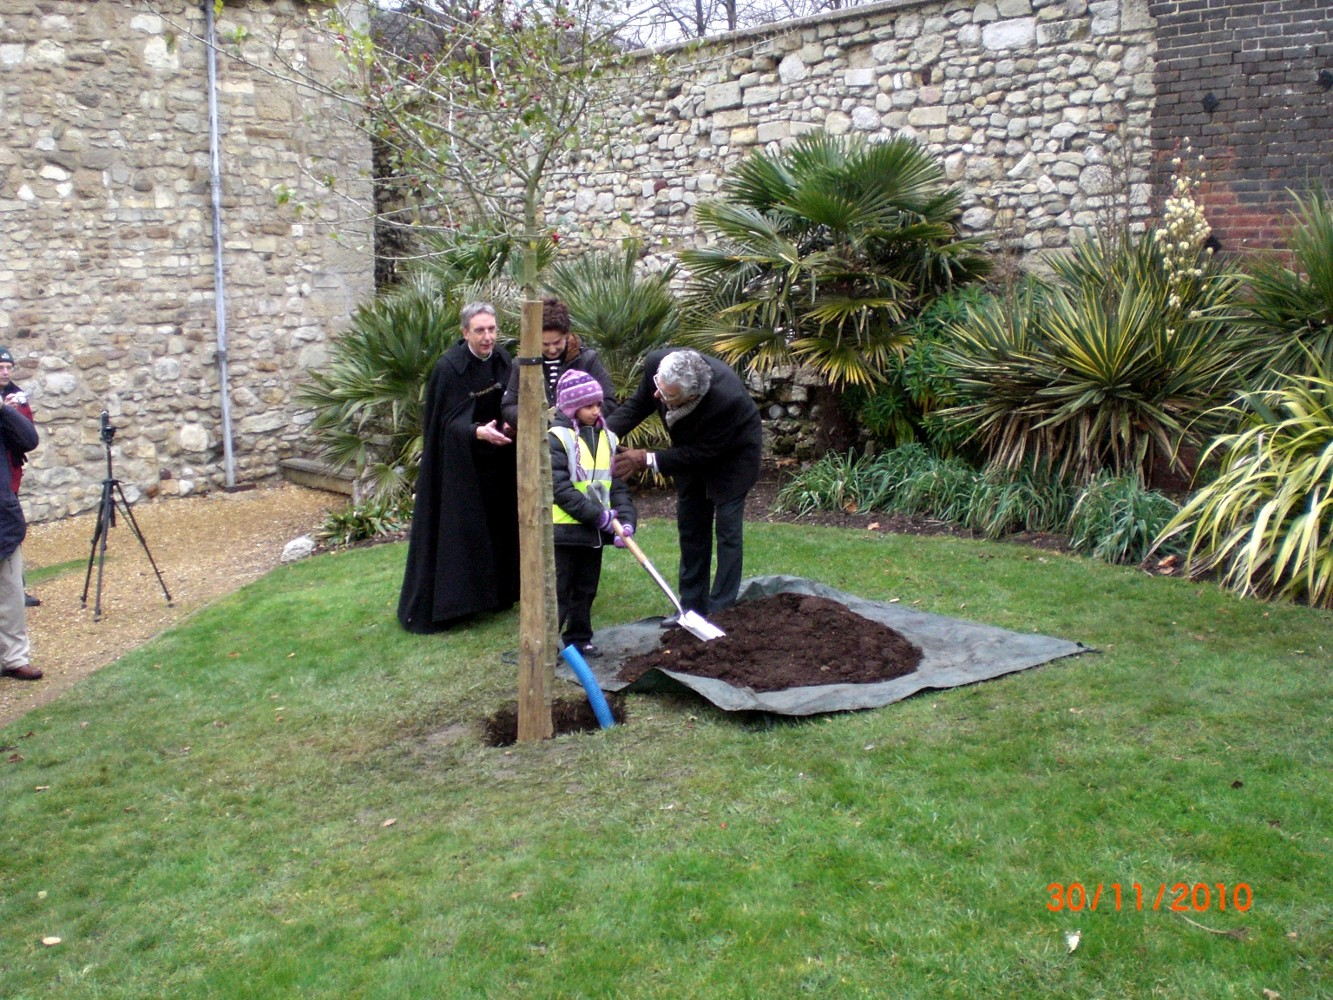 planting the commemorative tree Nov 2010